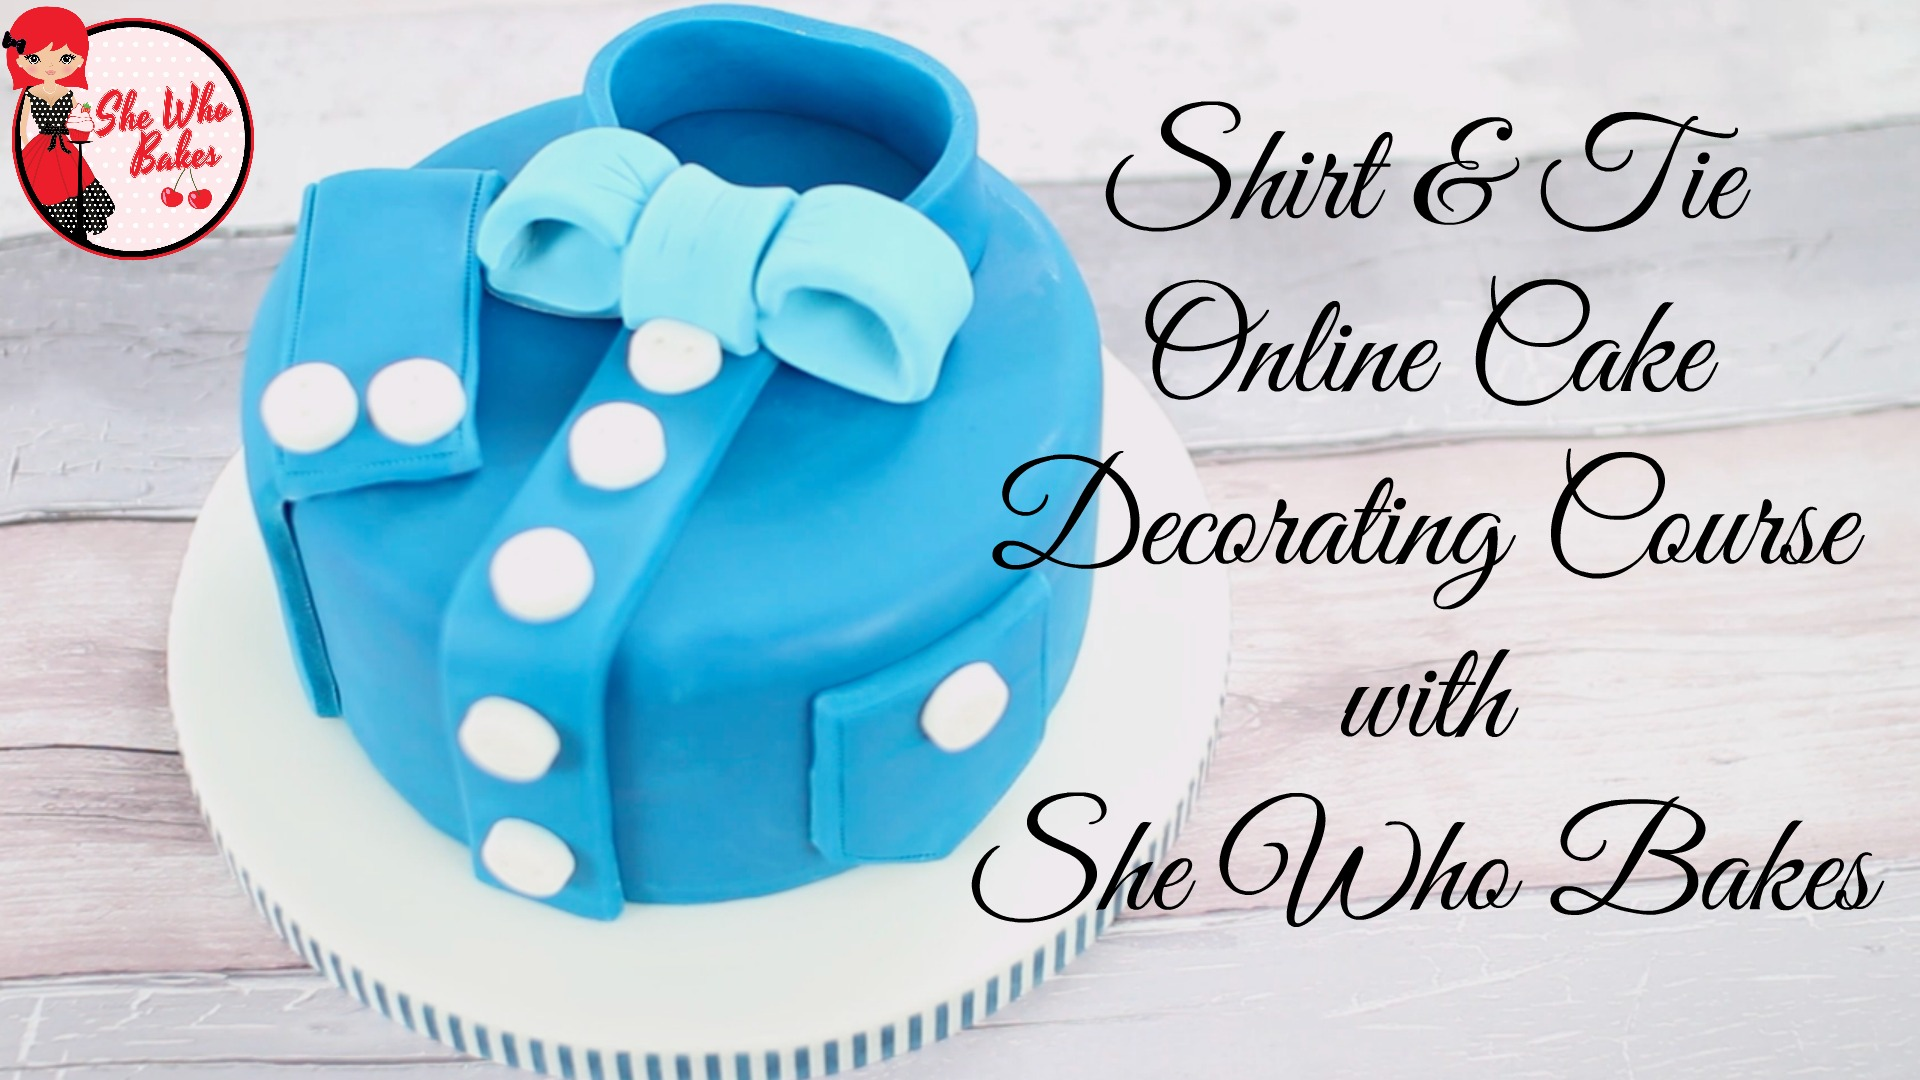 Shirt & Tie Online Cake Decorating Course